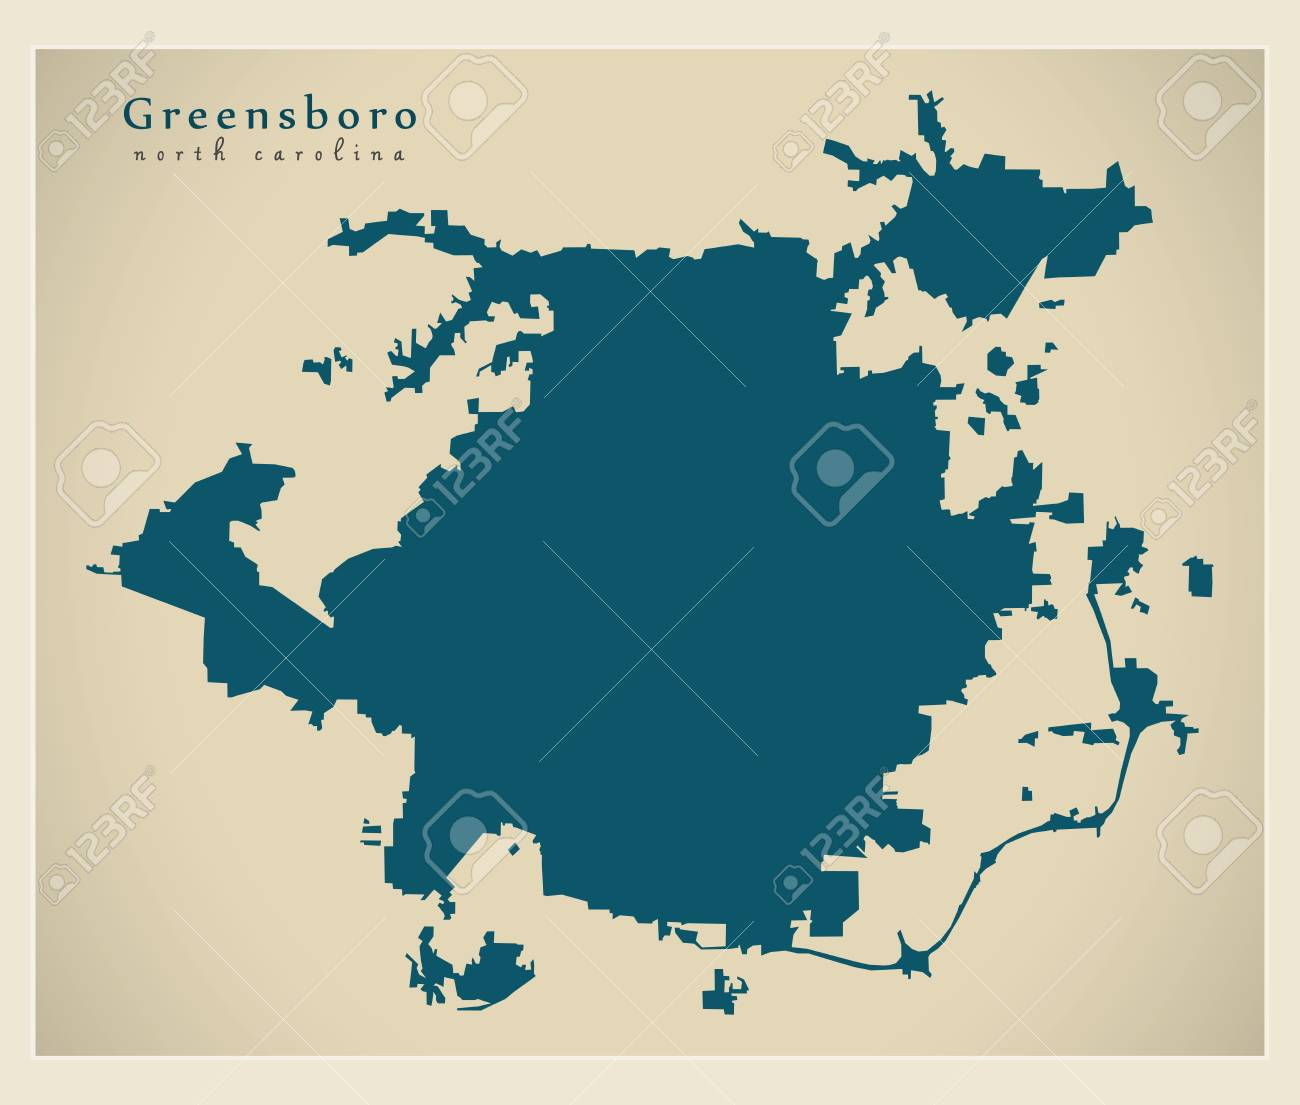 Modern City Map - Greensboro North Carolina City Of The USA ...